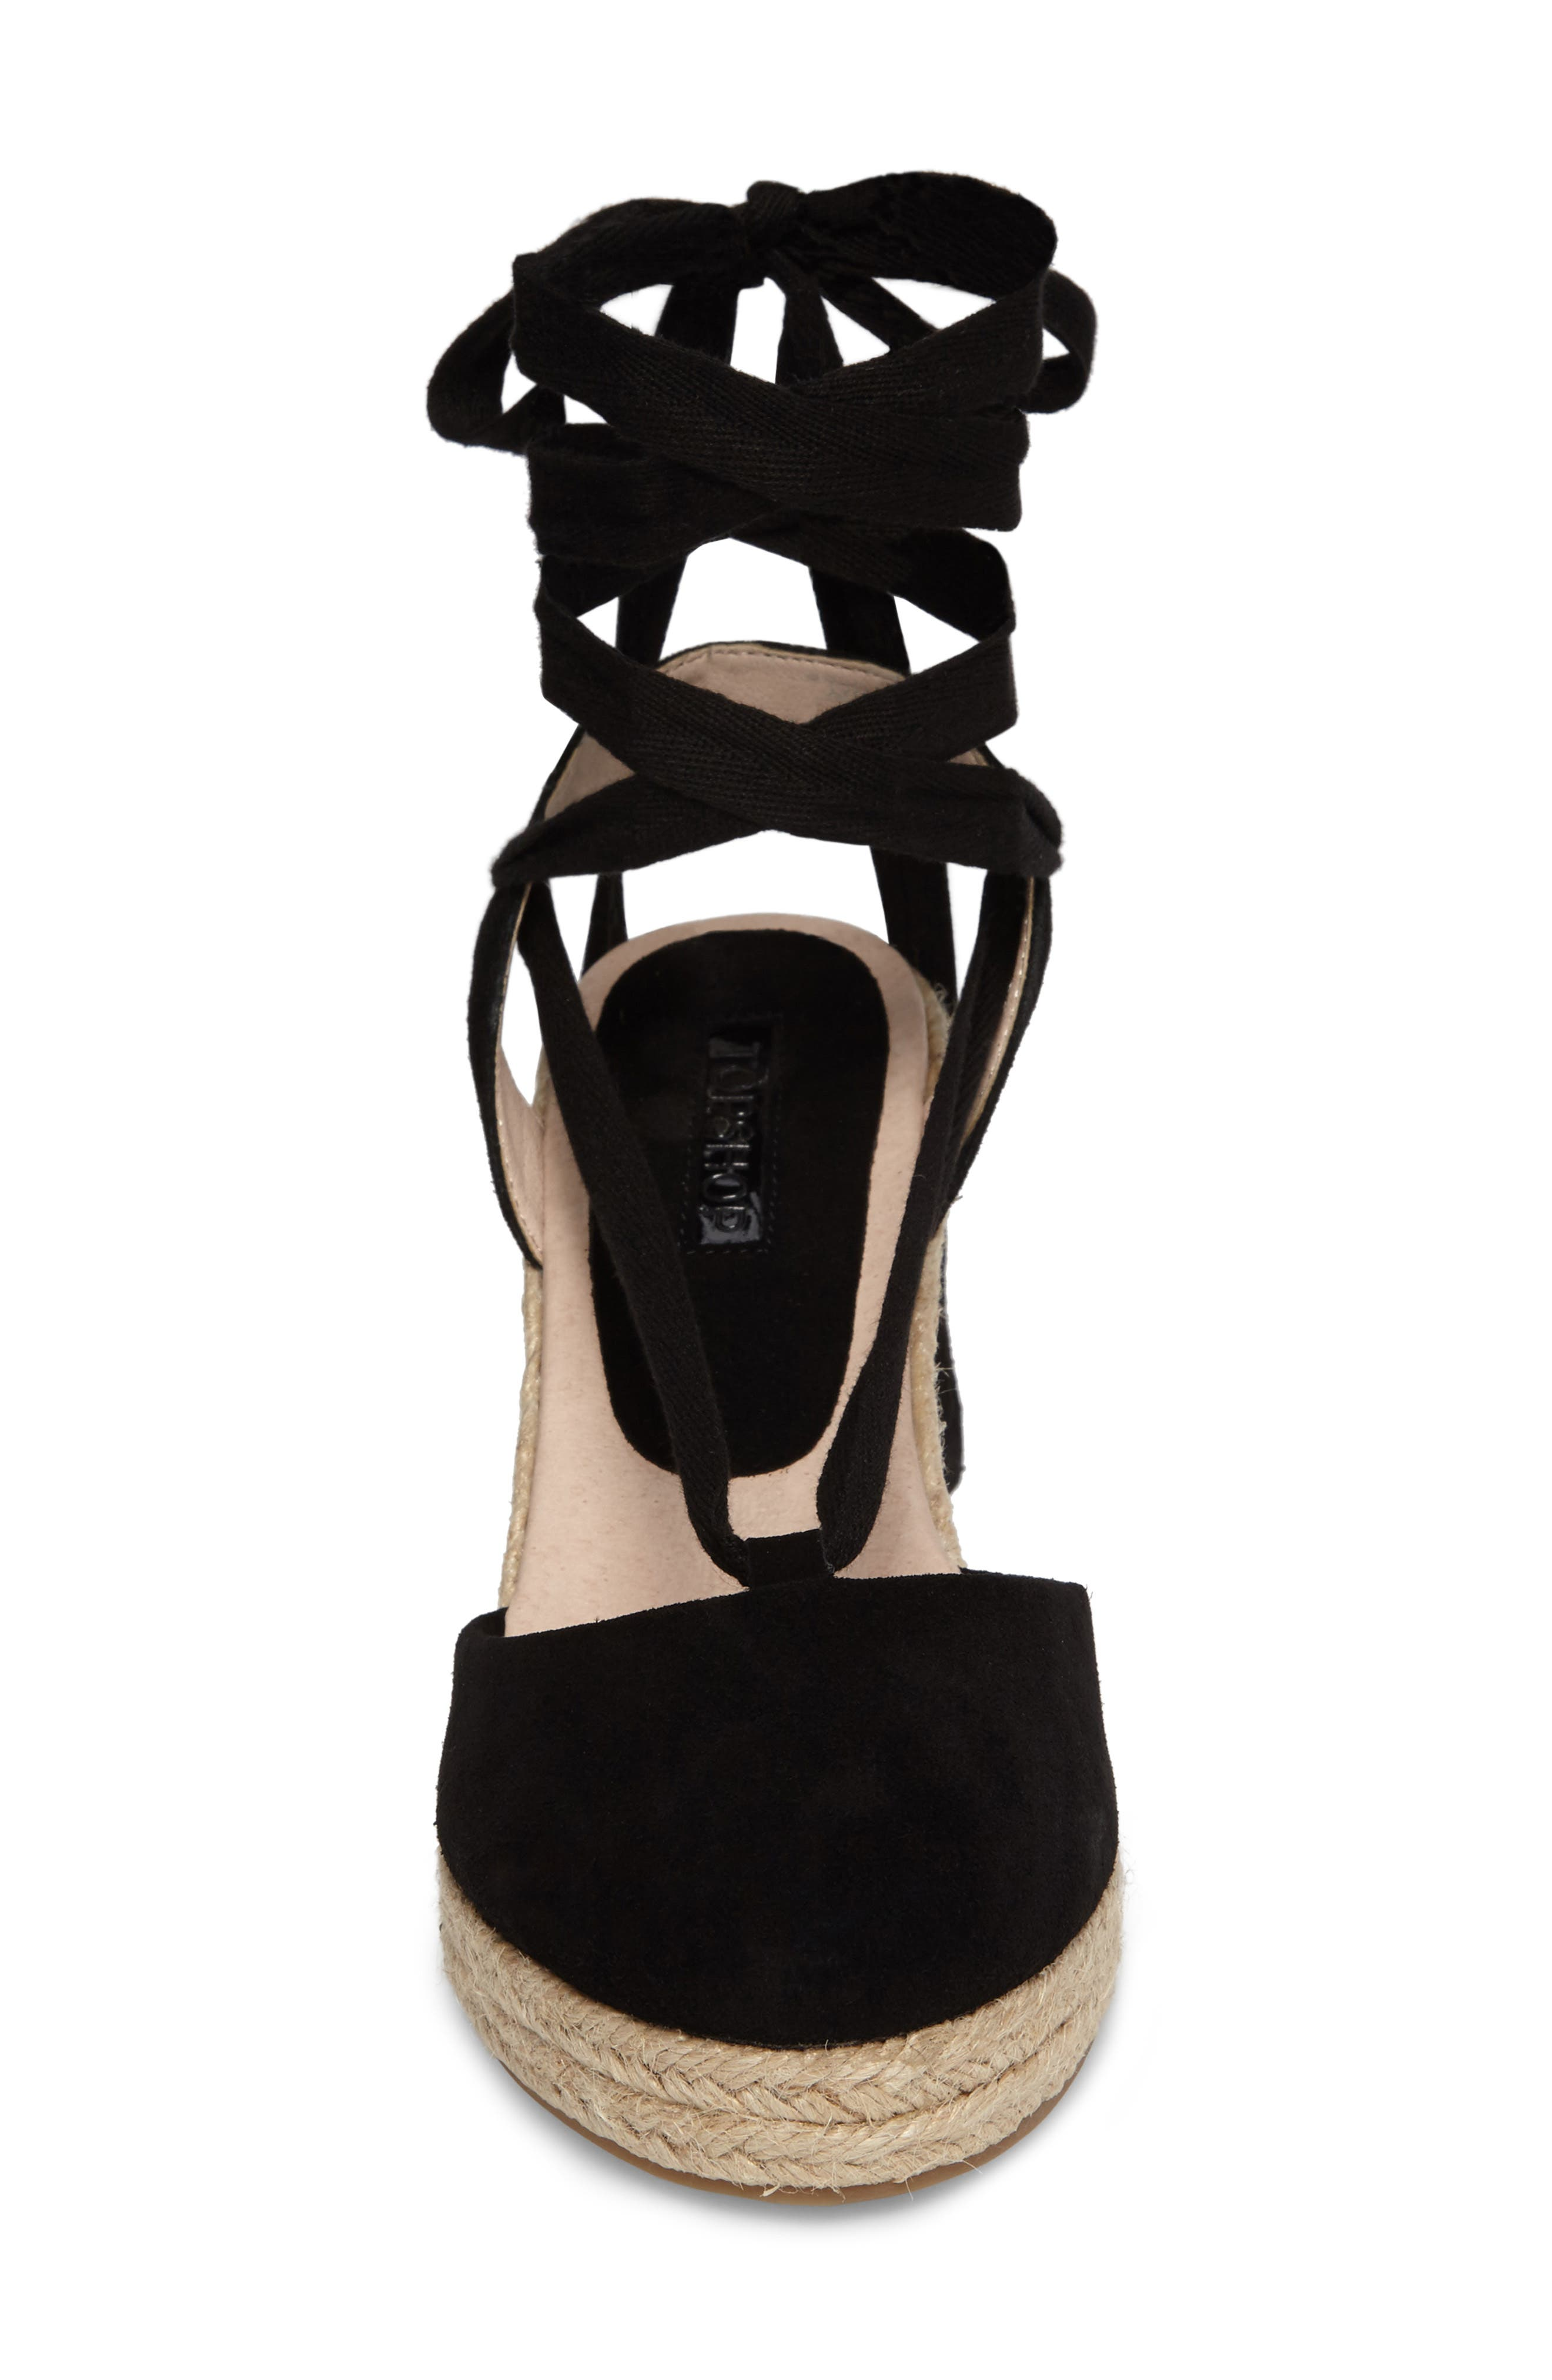 TOPSHOP, Waves Espadrille Wedge, Alternate thumbnail 4, color, 001